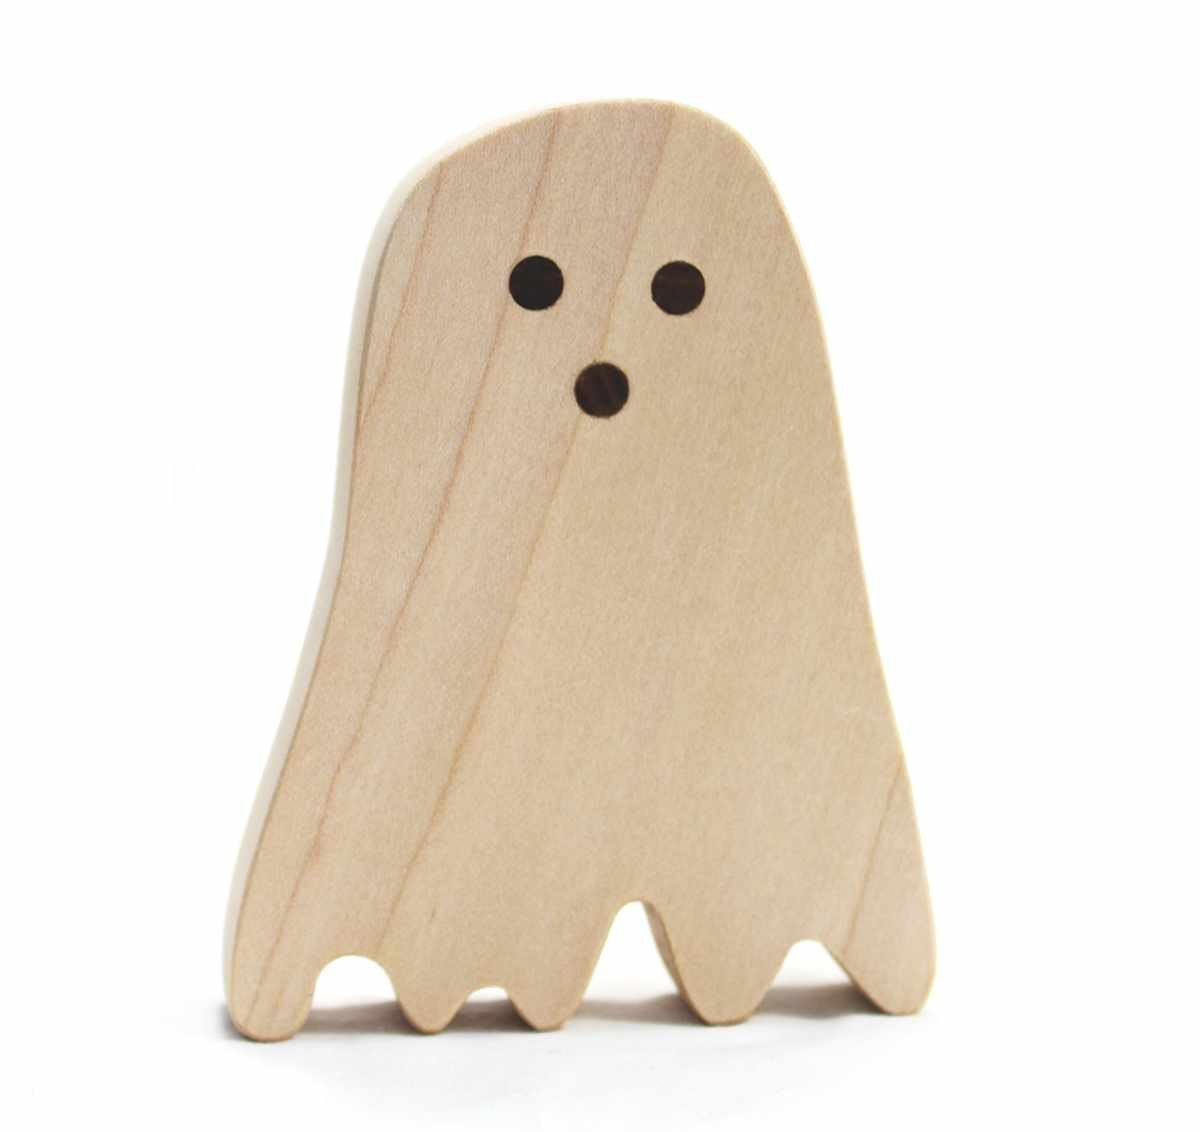 Classic Wood Toy Ghost